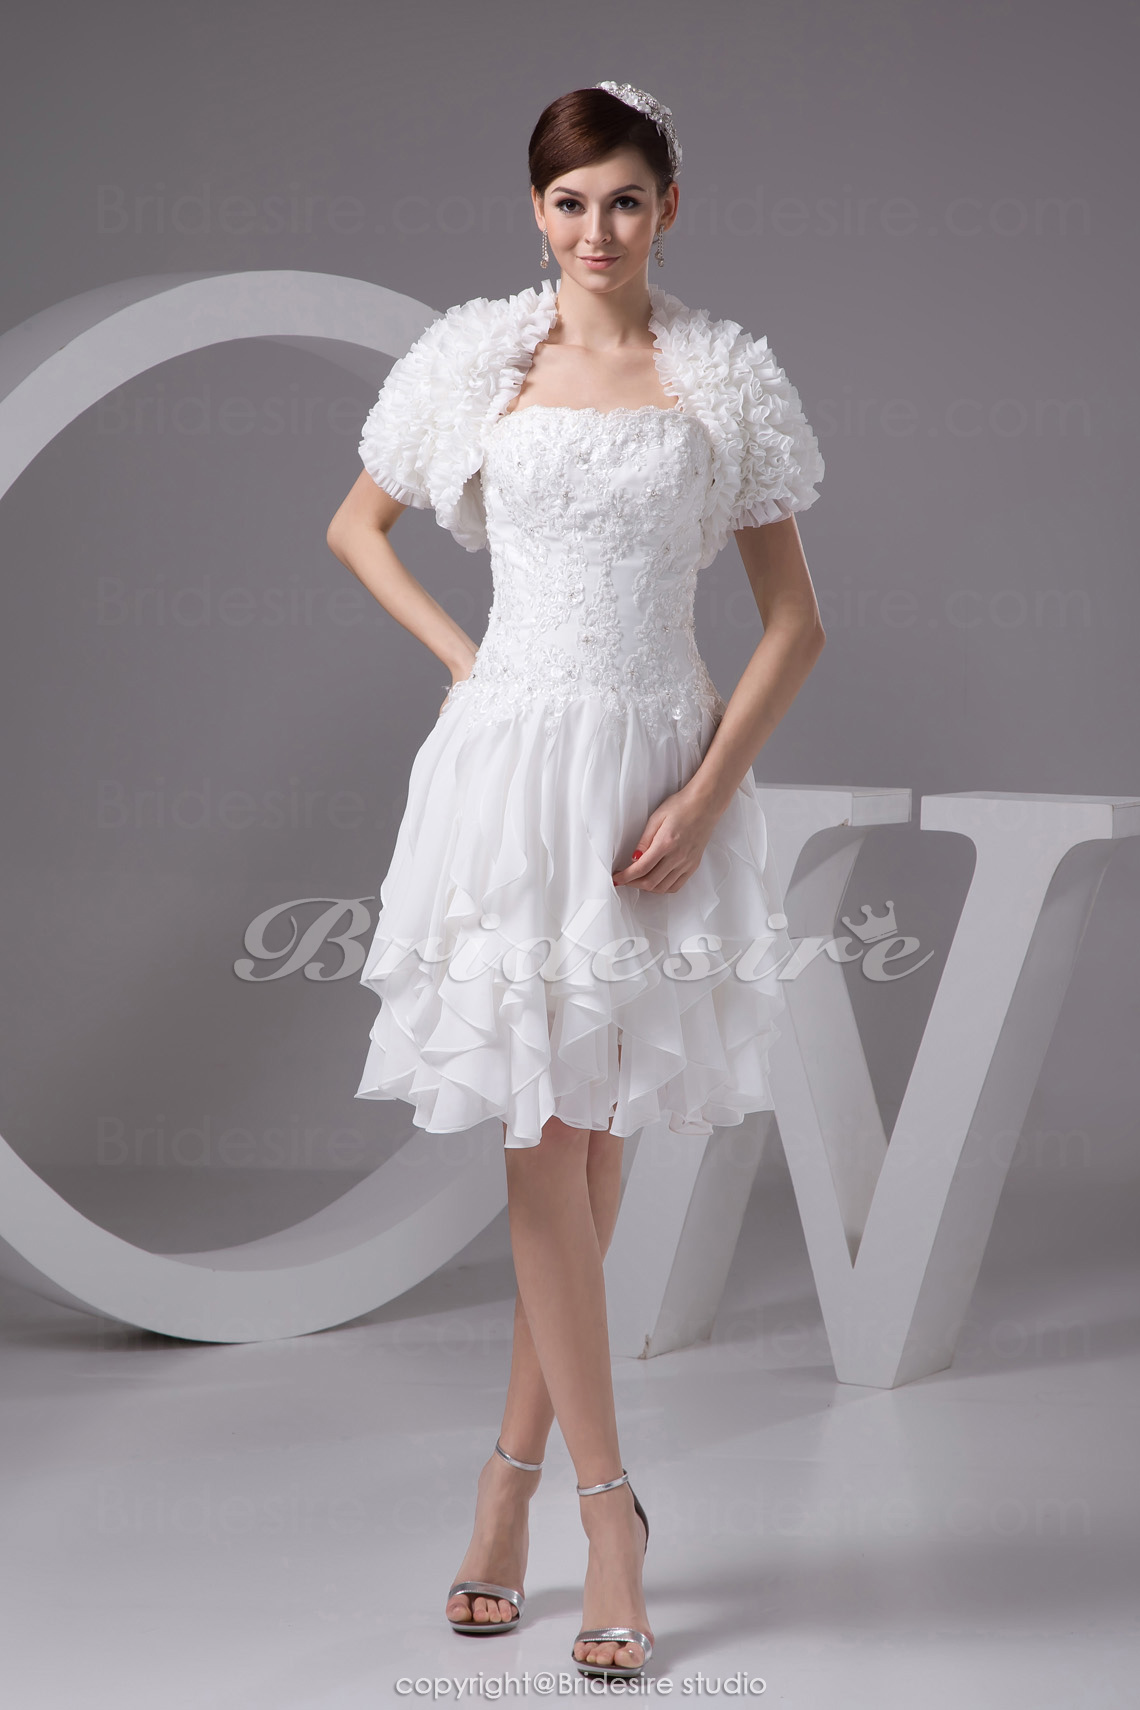 A-line Strapless Knee-length Short Sleeve Chiffon Dress